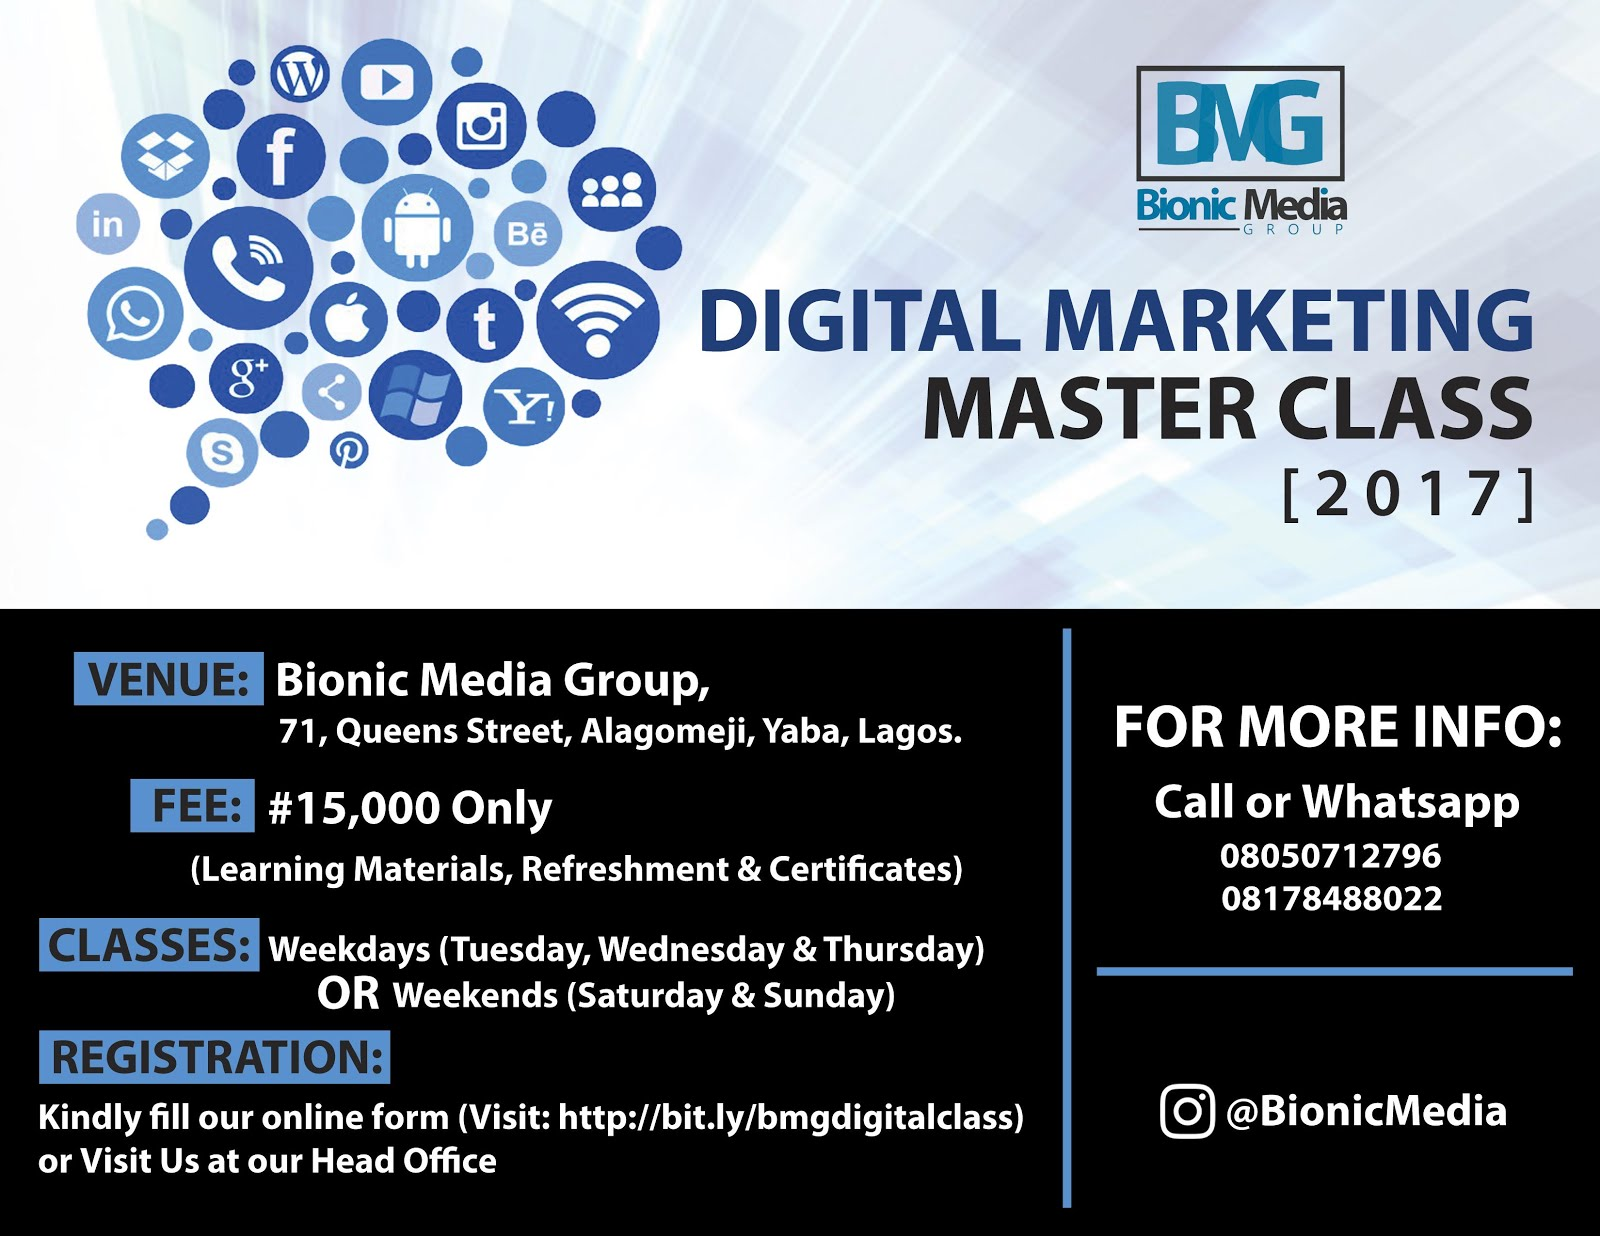 Click image to enroll NOW!